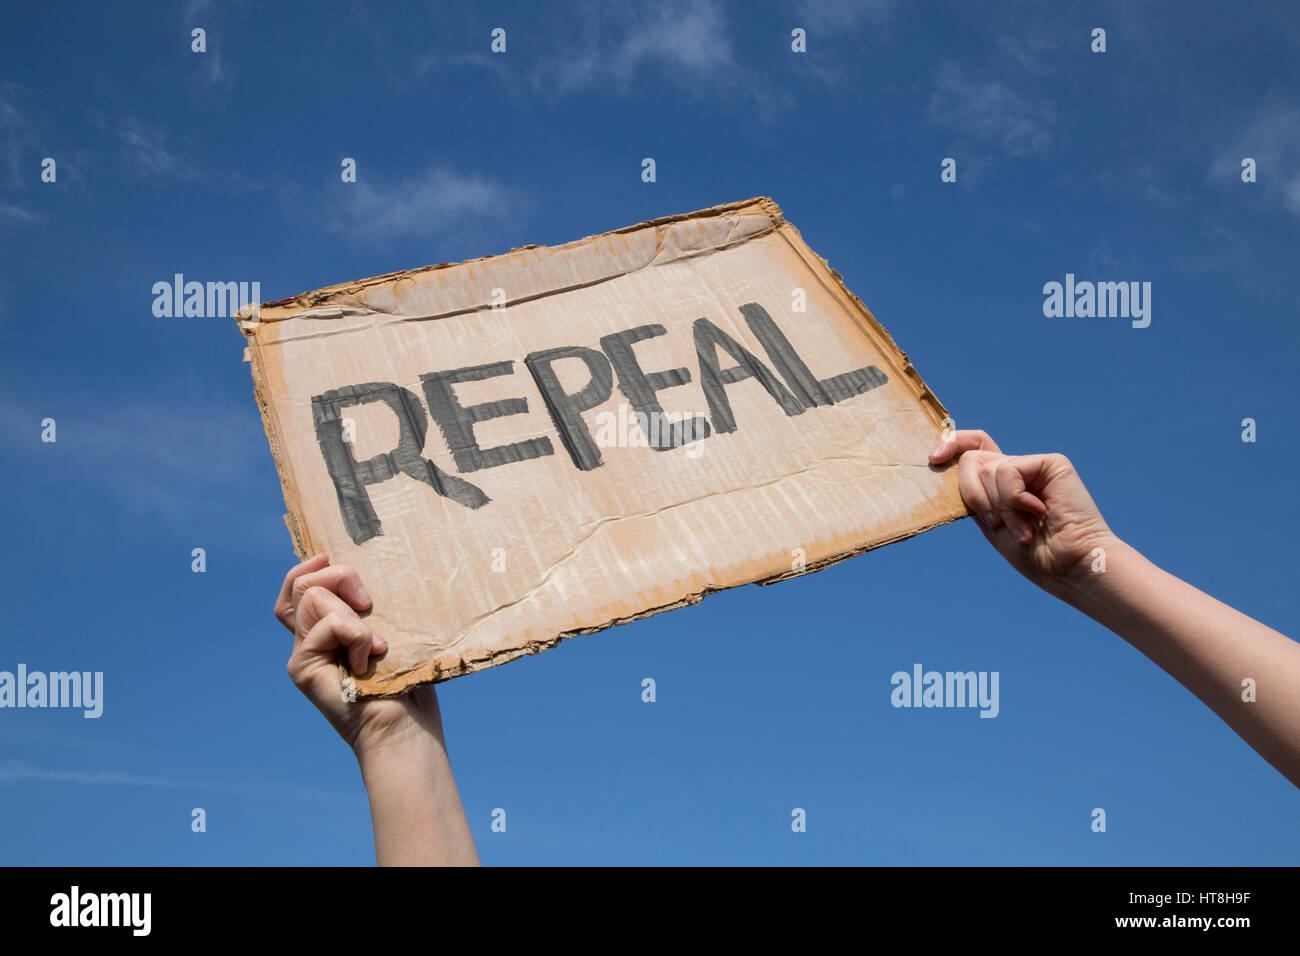 Placard Abortion Stock Photos & Placard Abortion Stock Images - Alamy